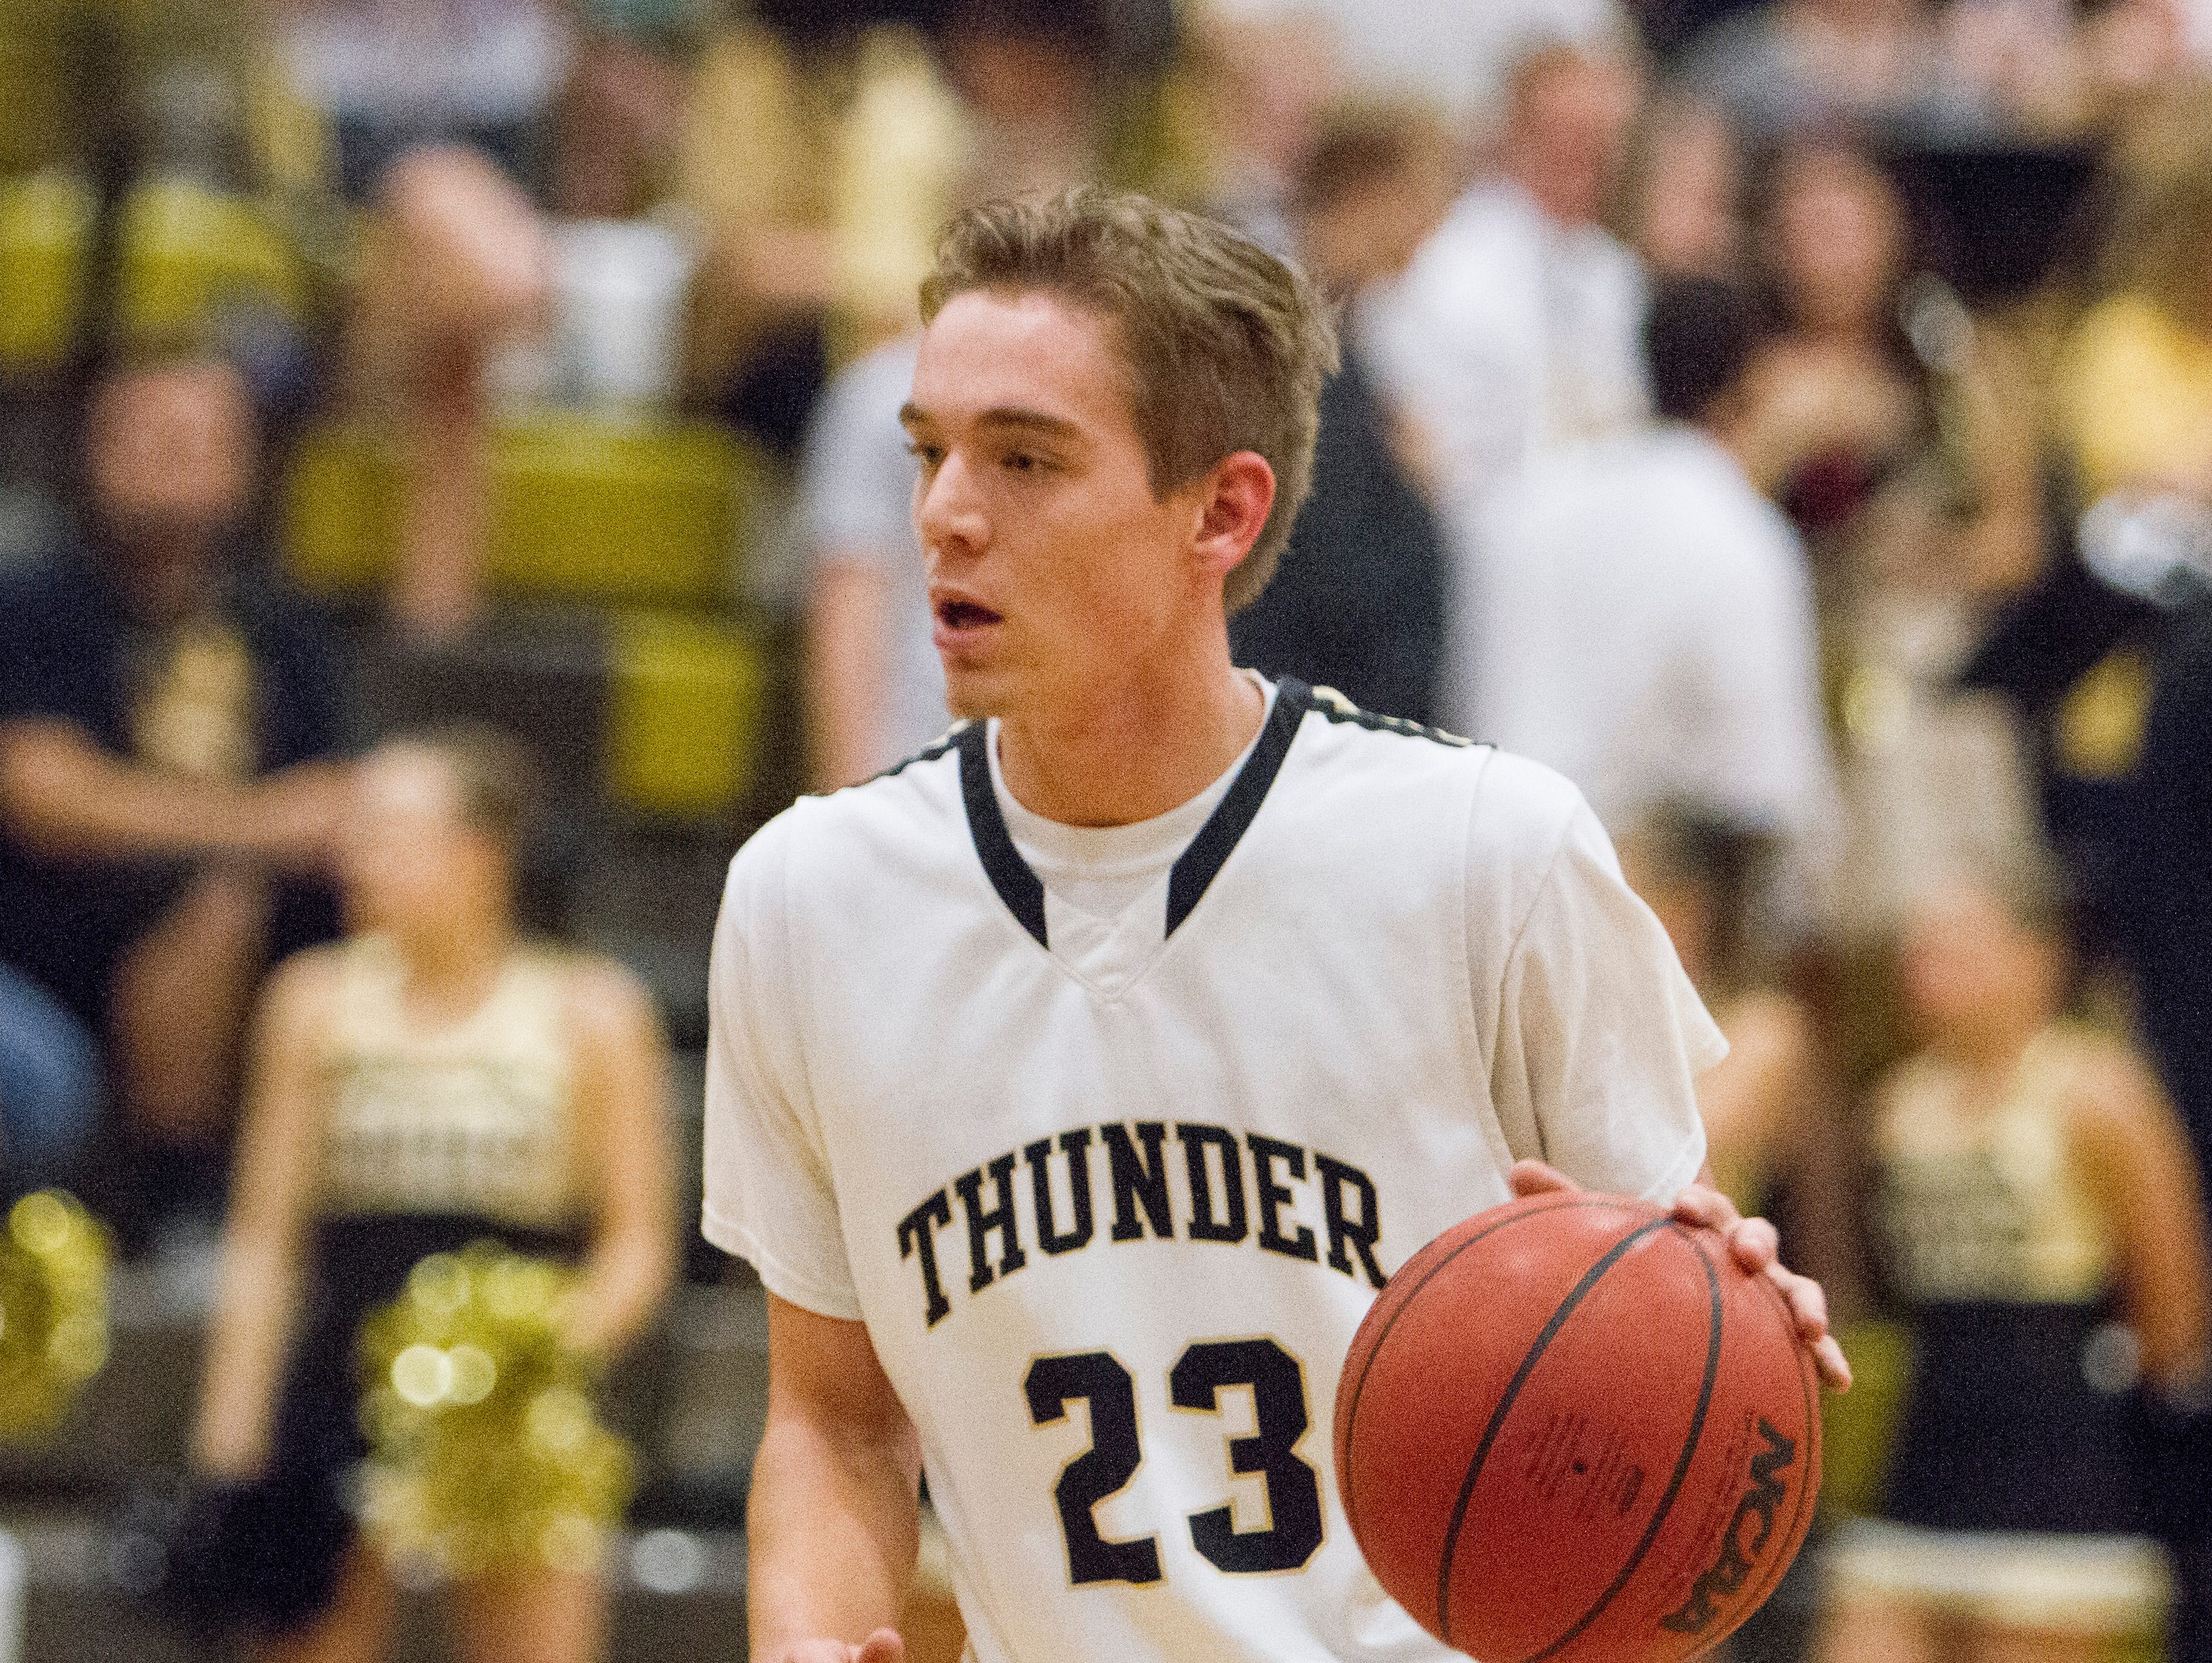 Desert Hills advances to the quarterfinals with a 56-49 win over Tooele Saturday, Feb. 20, 2016.